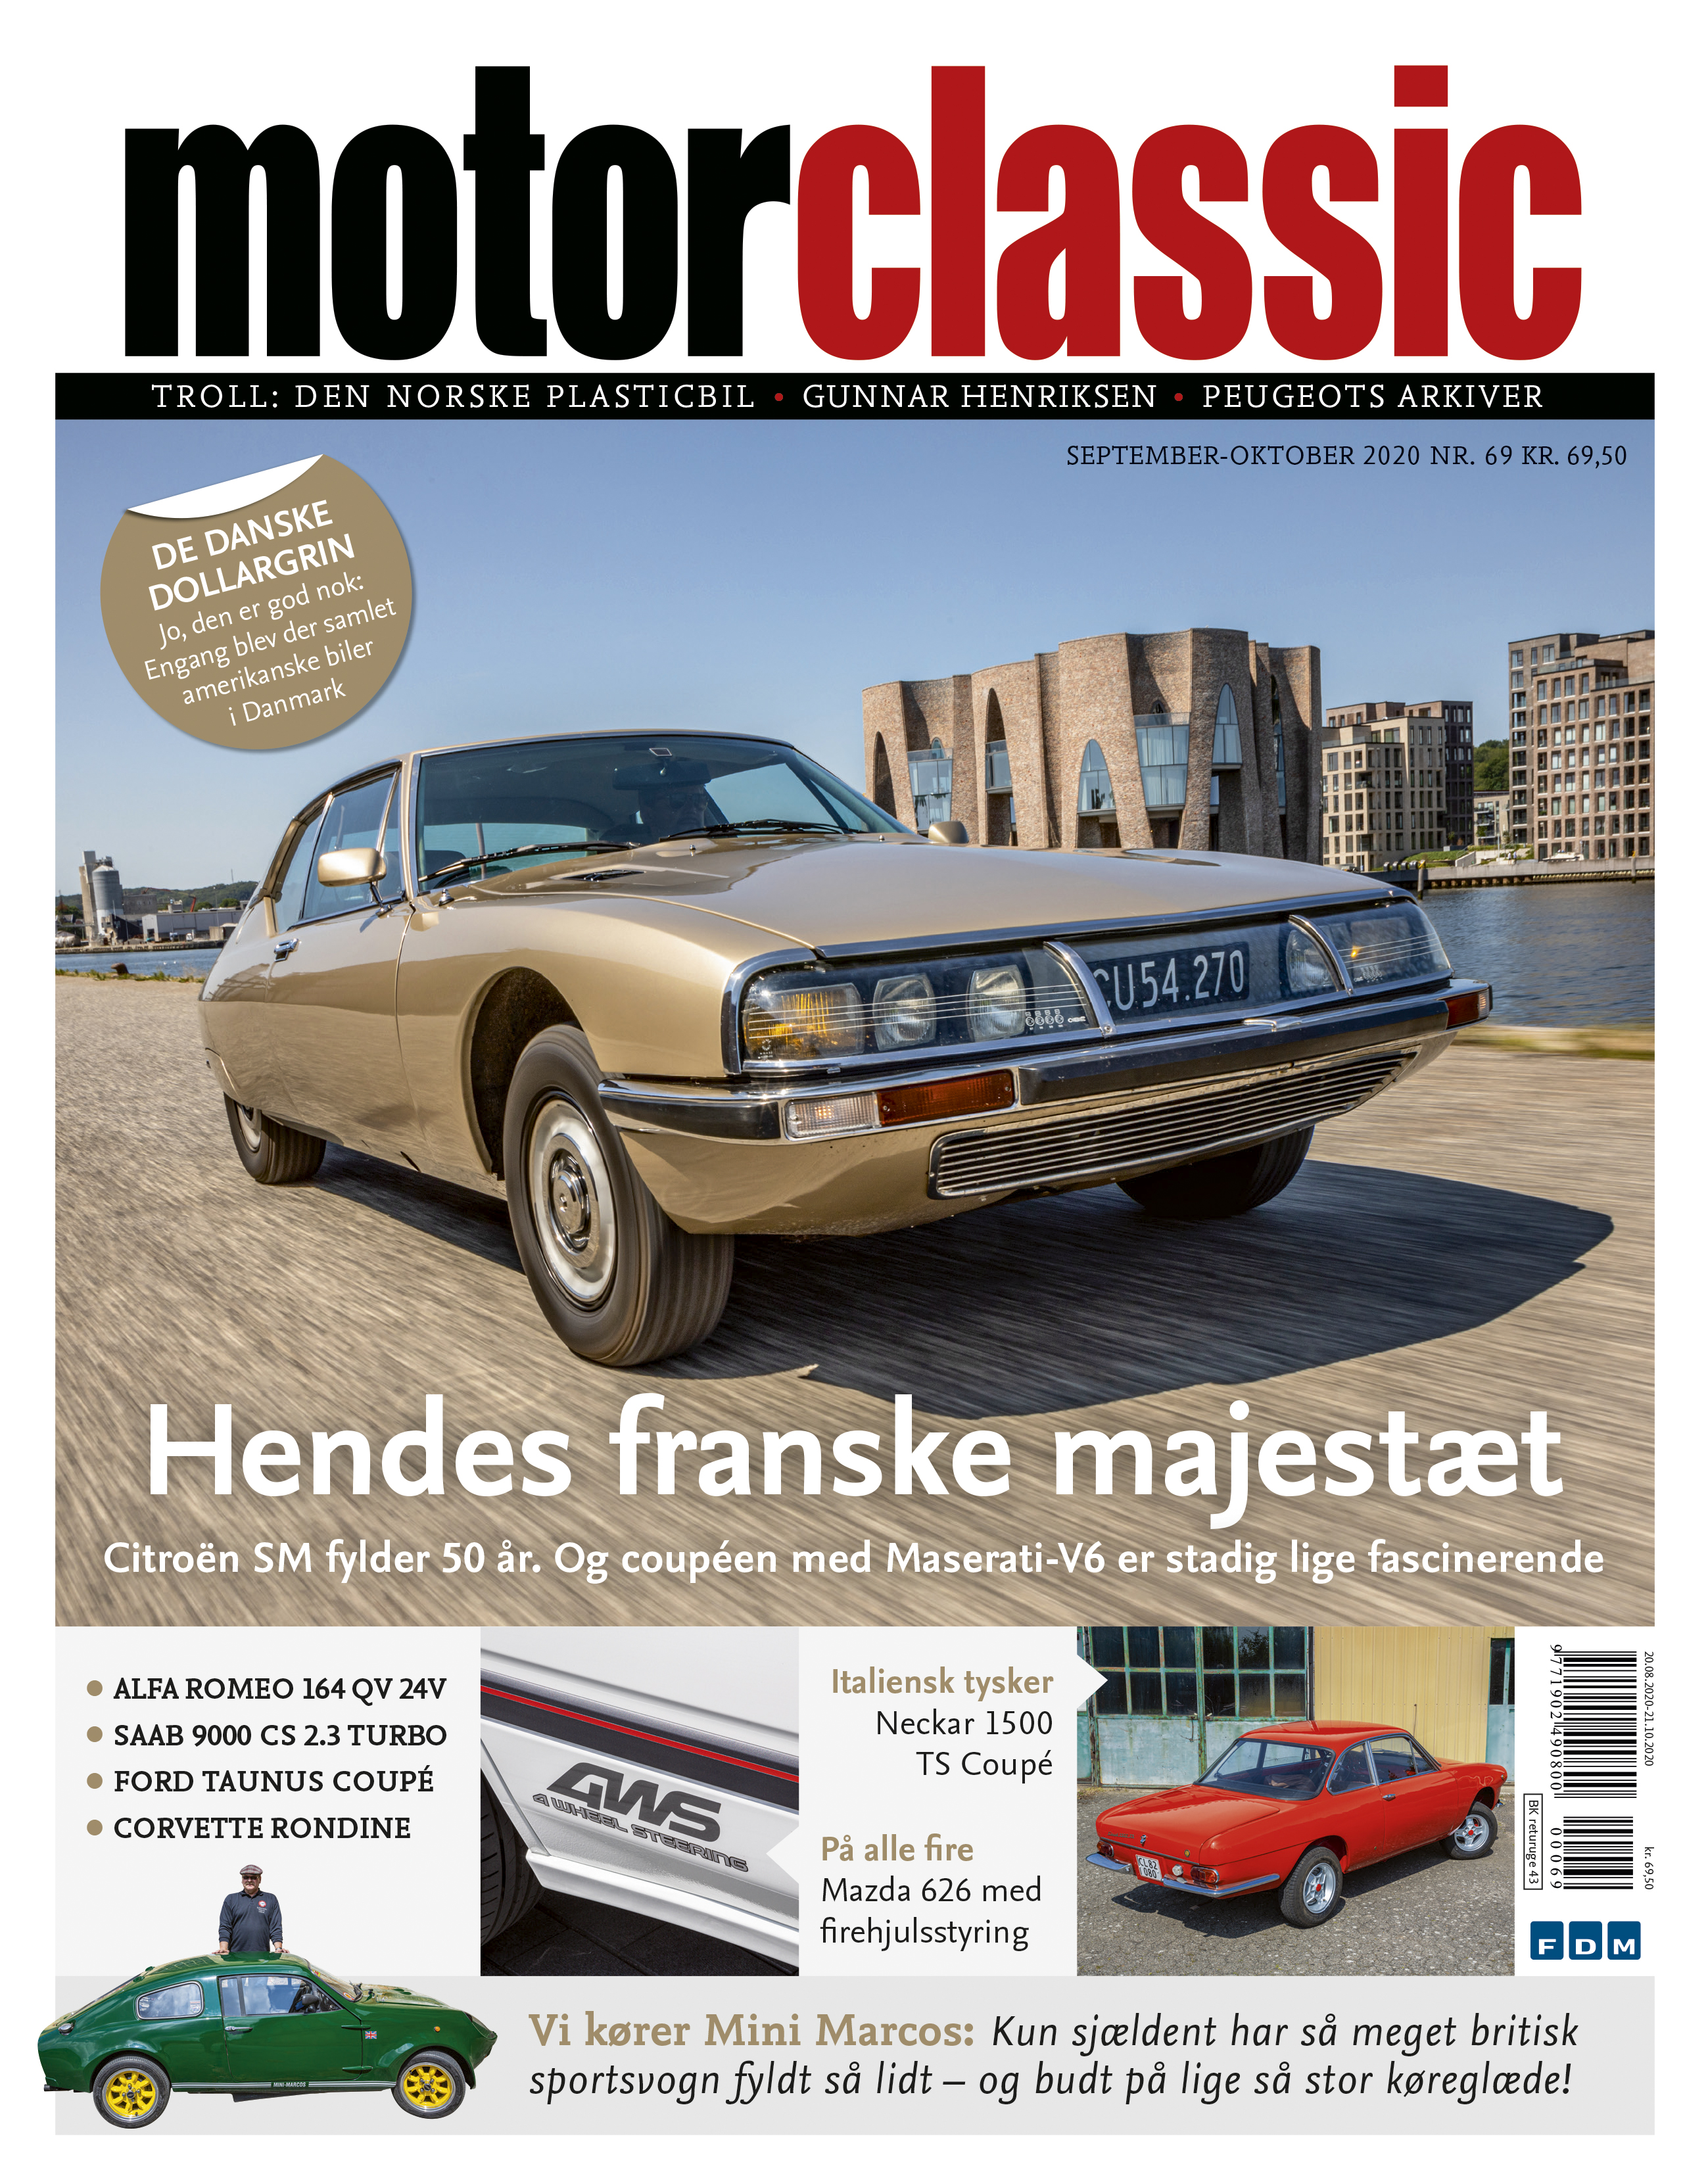 motorcl-august-2020